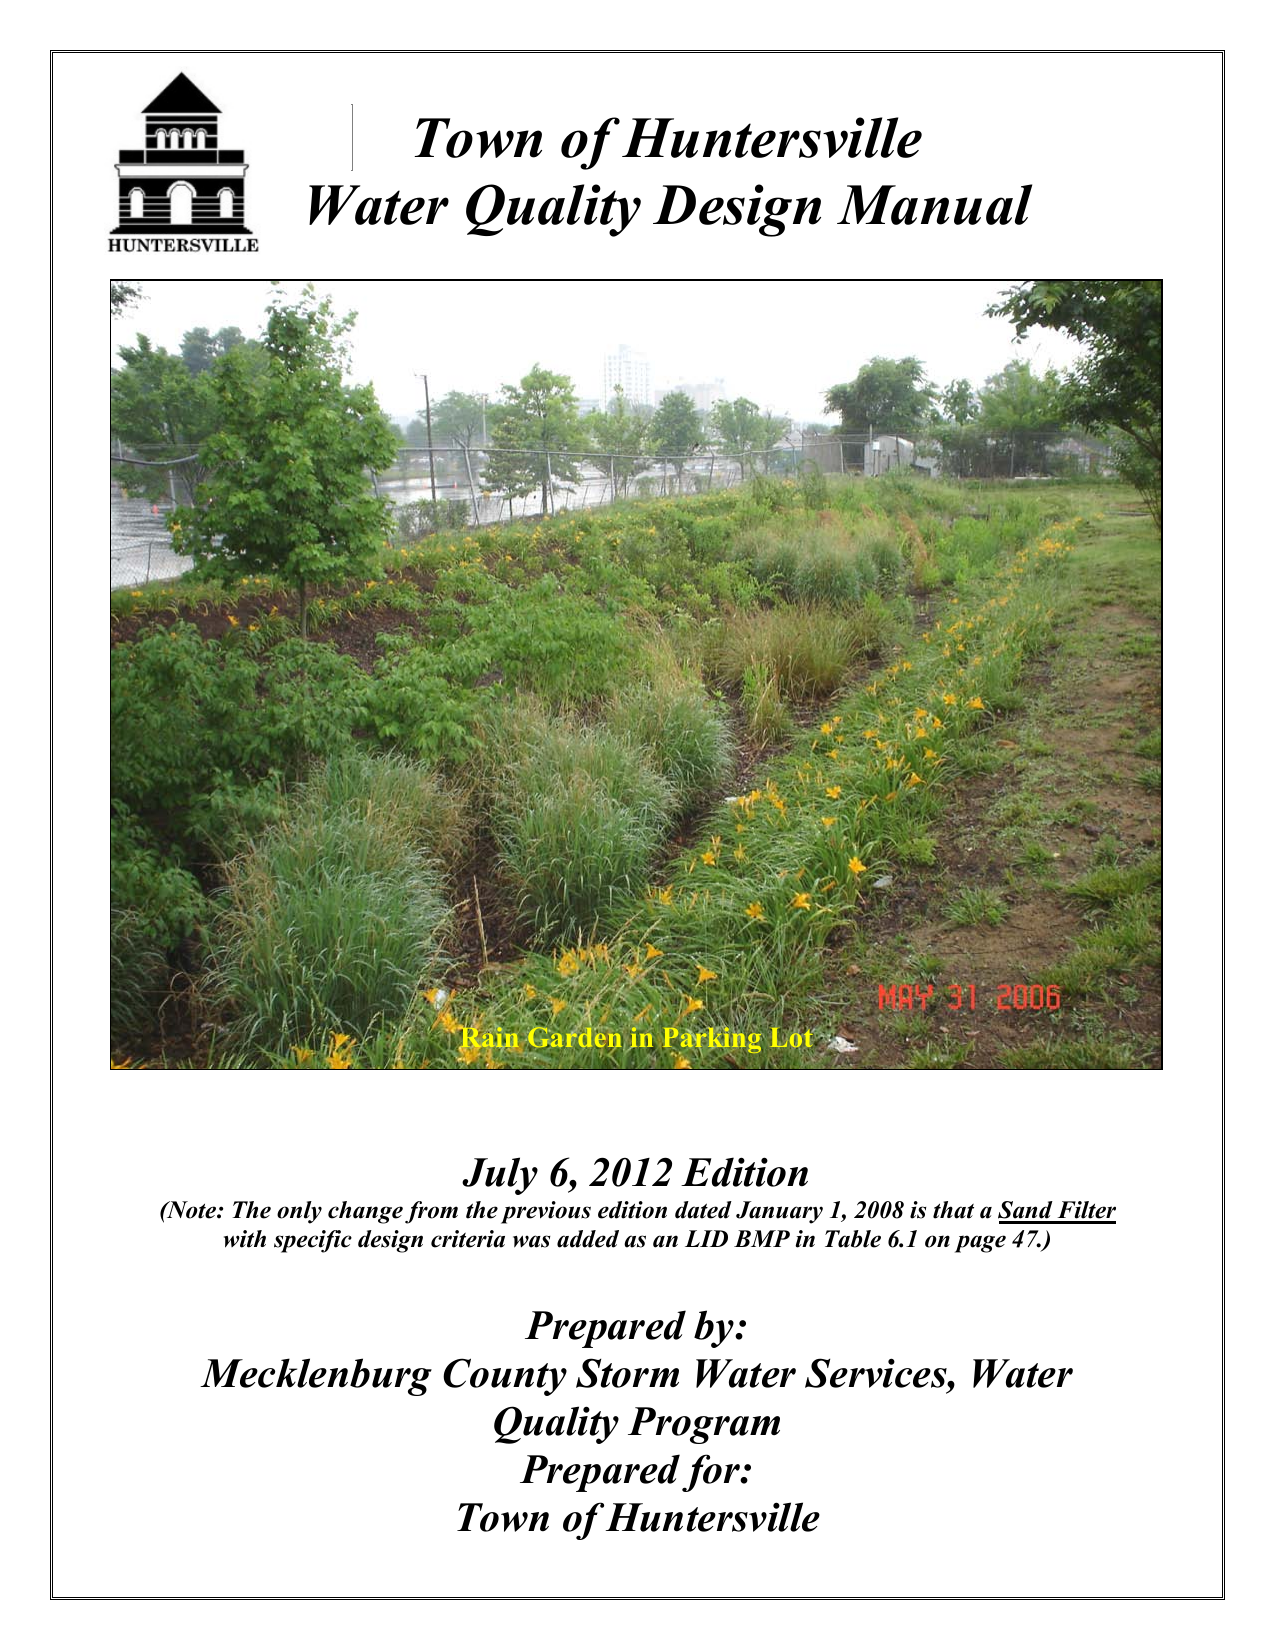 Town of Huntersville Water Quality Design Manual July 6 ... Rain Garden Design Manual on pervious concrete design manual, rain garden design templates, sanitary sewer design manual, constructed wetland design manual, rain gardens for homeowners, rain success, rain garden design software, bioswale design manual, storm drain design manual, permaculture design manual, drip irrigation design manual, wastewater design manual, new jersey rain garden manual, rain garden manual washington, rain garden design plans,